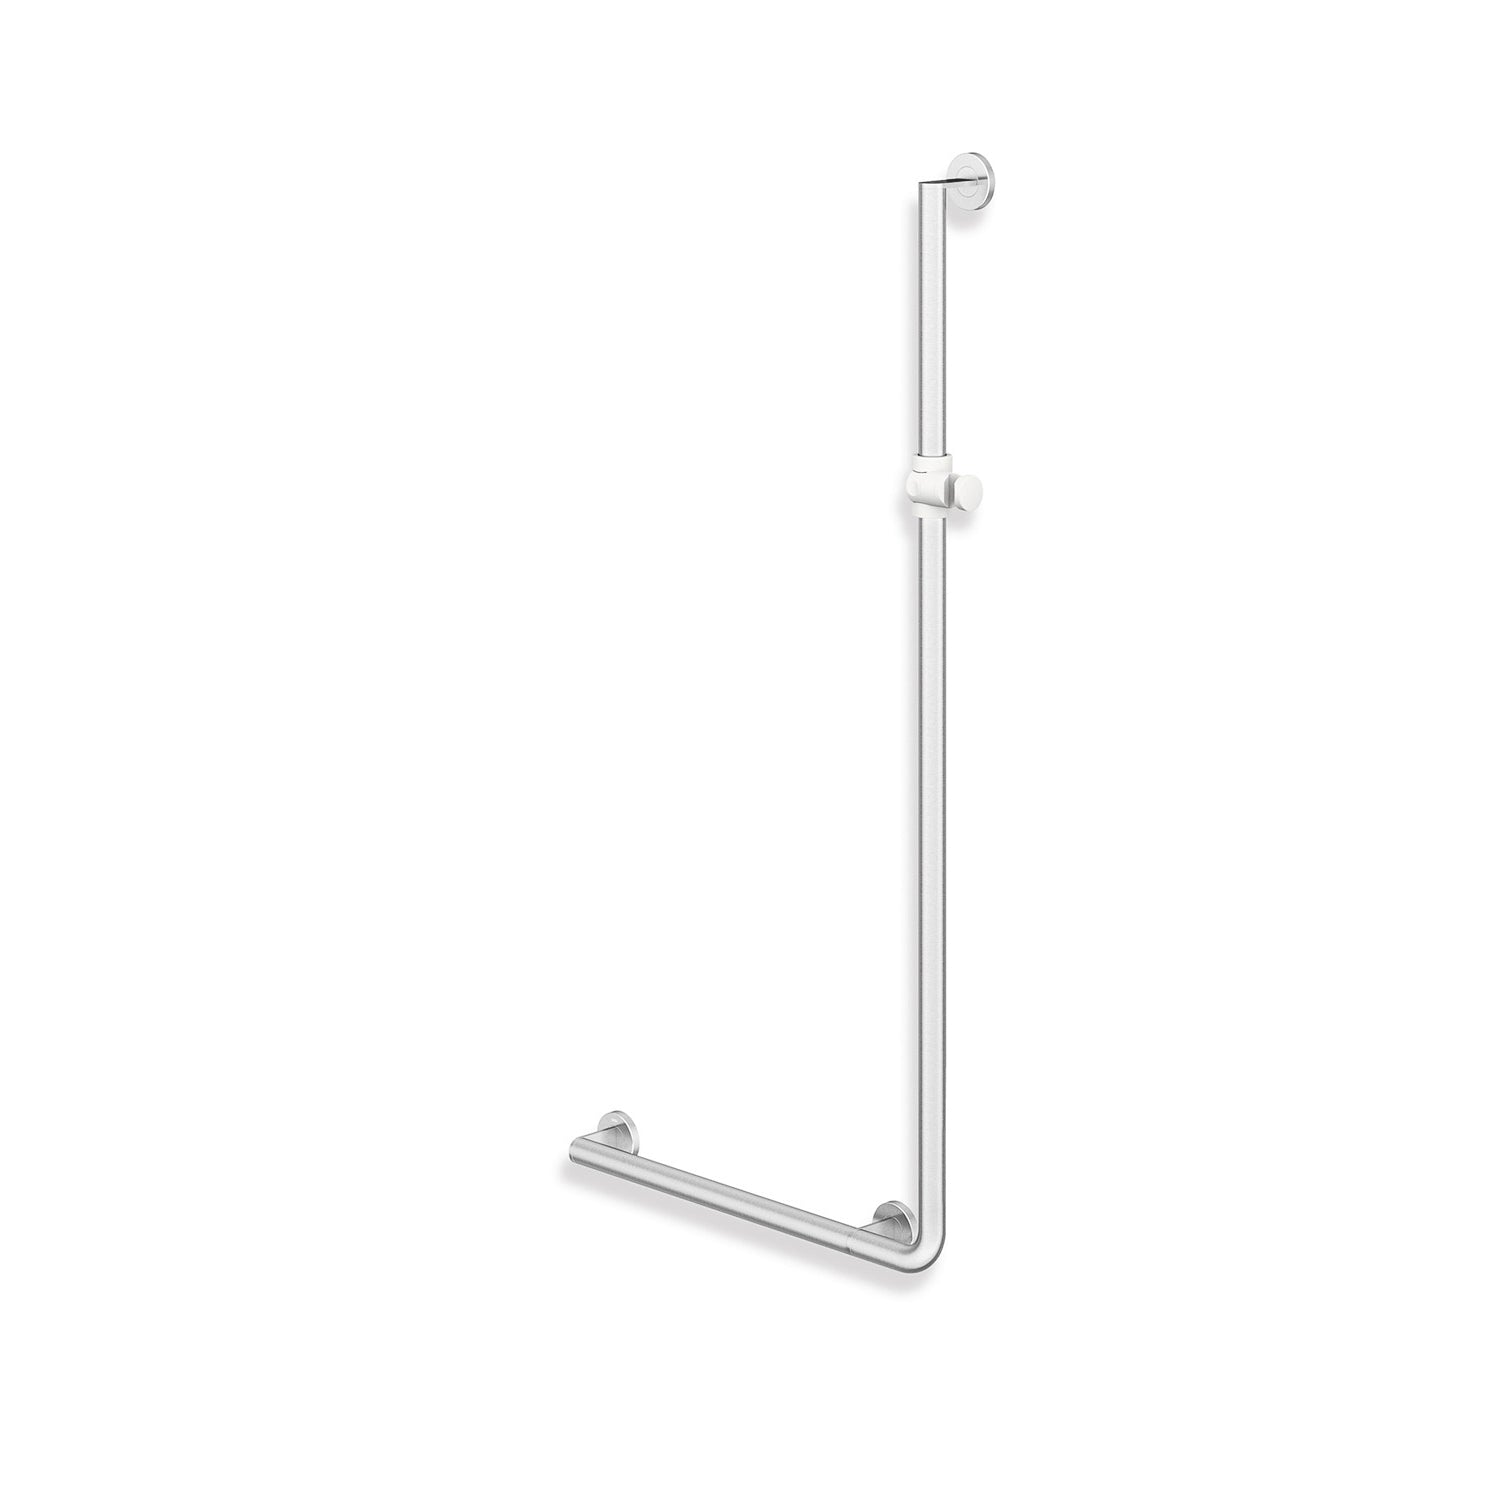 1250x600mm Left Handed Freestyle Supportive L Shaped Shower Rail with a satin steel finish on a white background